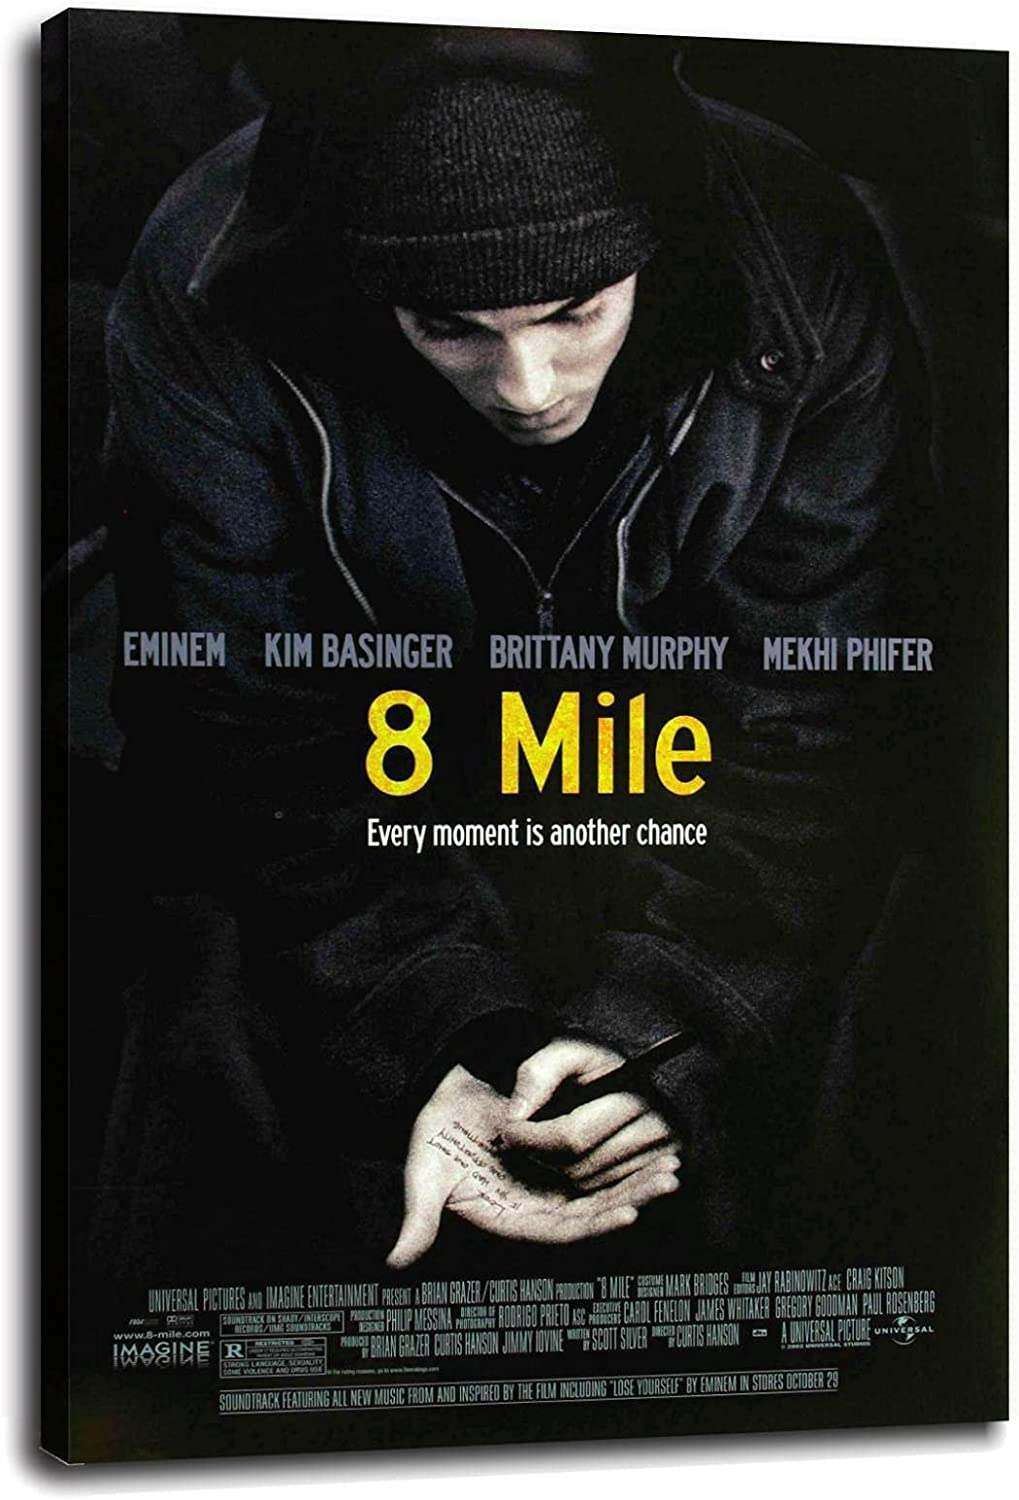 2002 8 MILE - Movie Film Canvas Ranking integrated Oklahoma City Mall 1st place DecorWall Poster Art Home